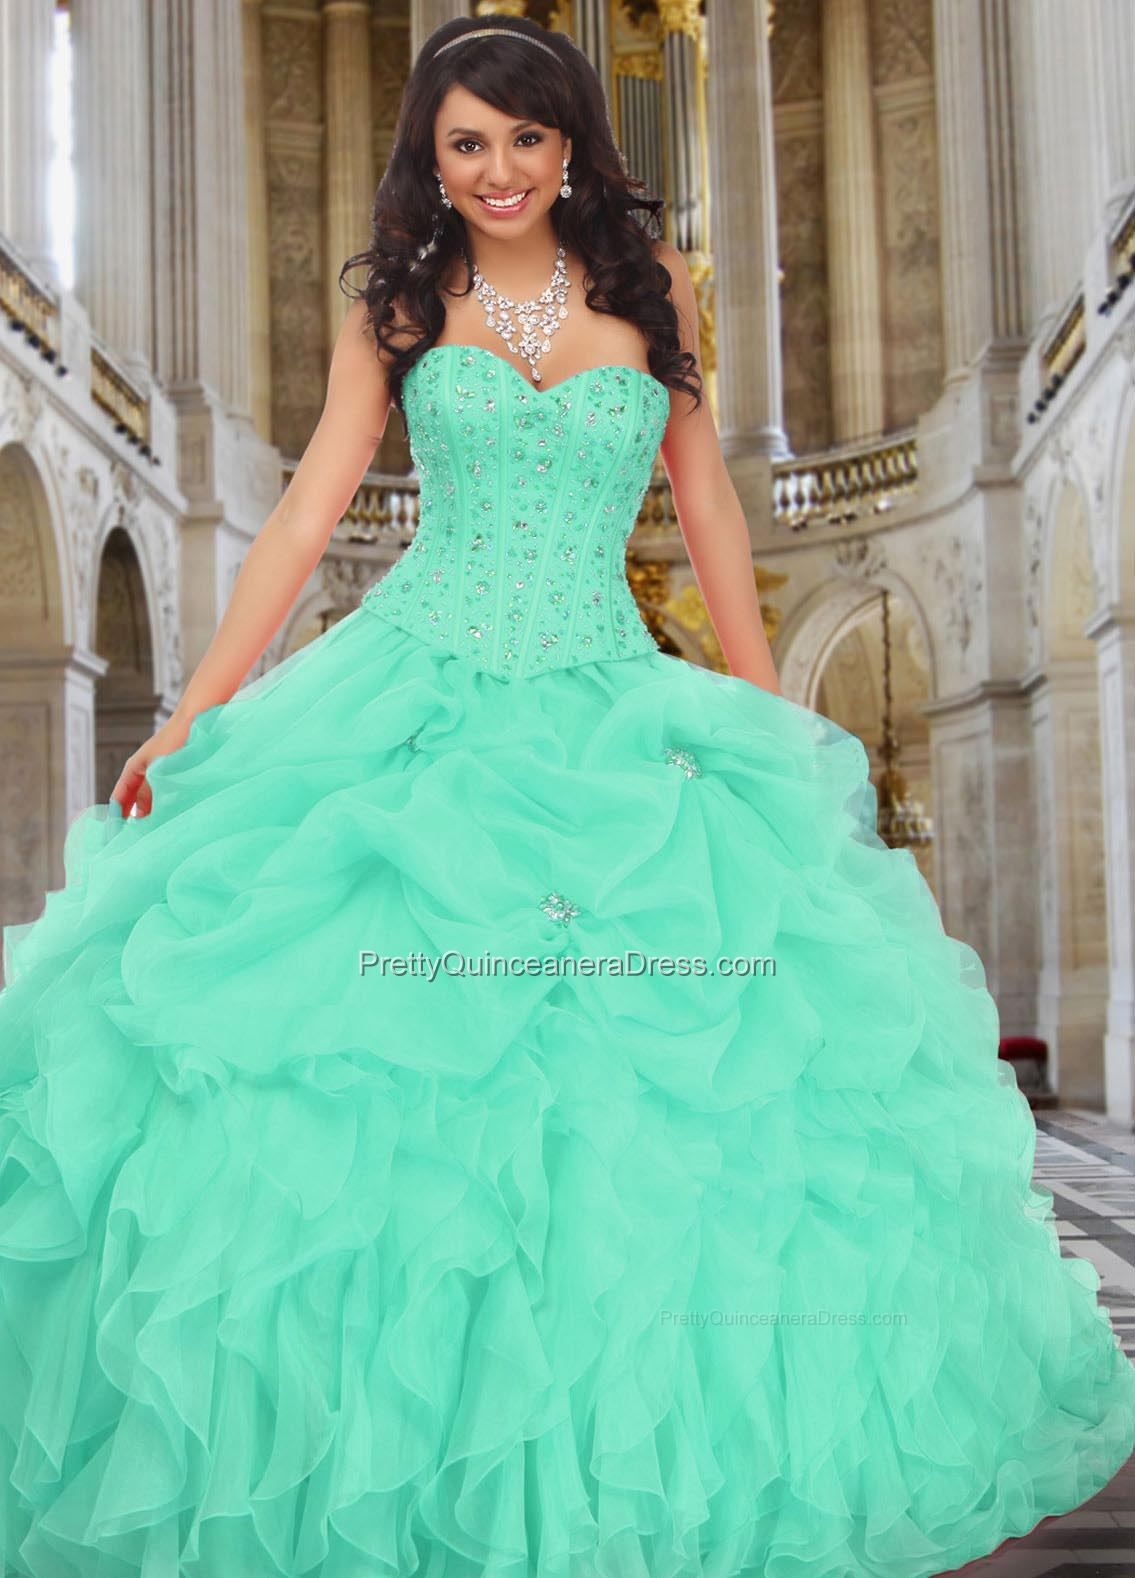 quinceanera dresses turquoise - Google Search | II Q ...